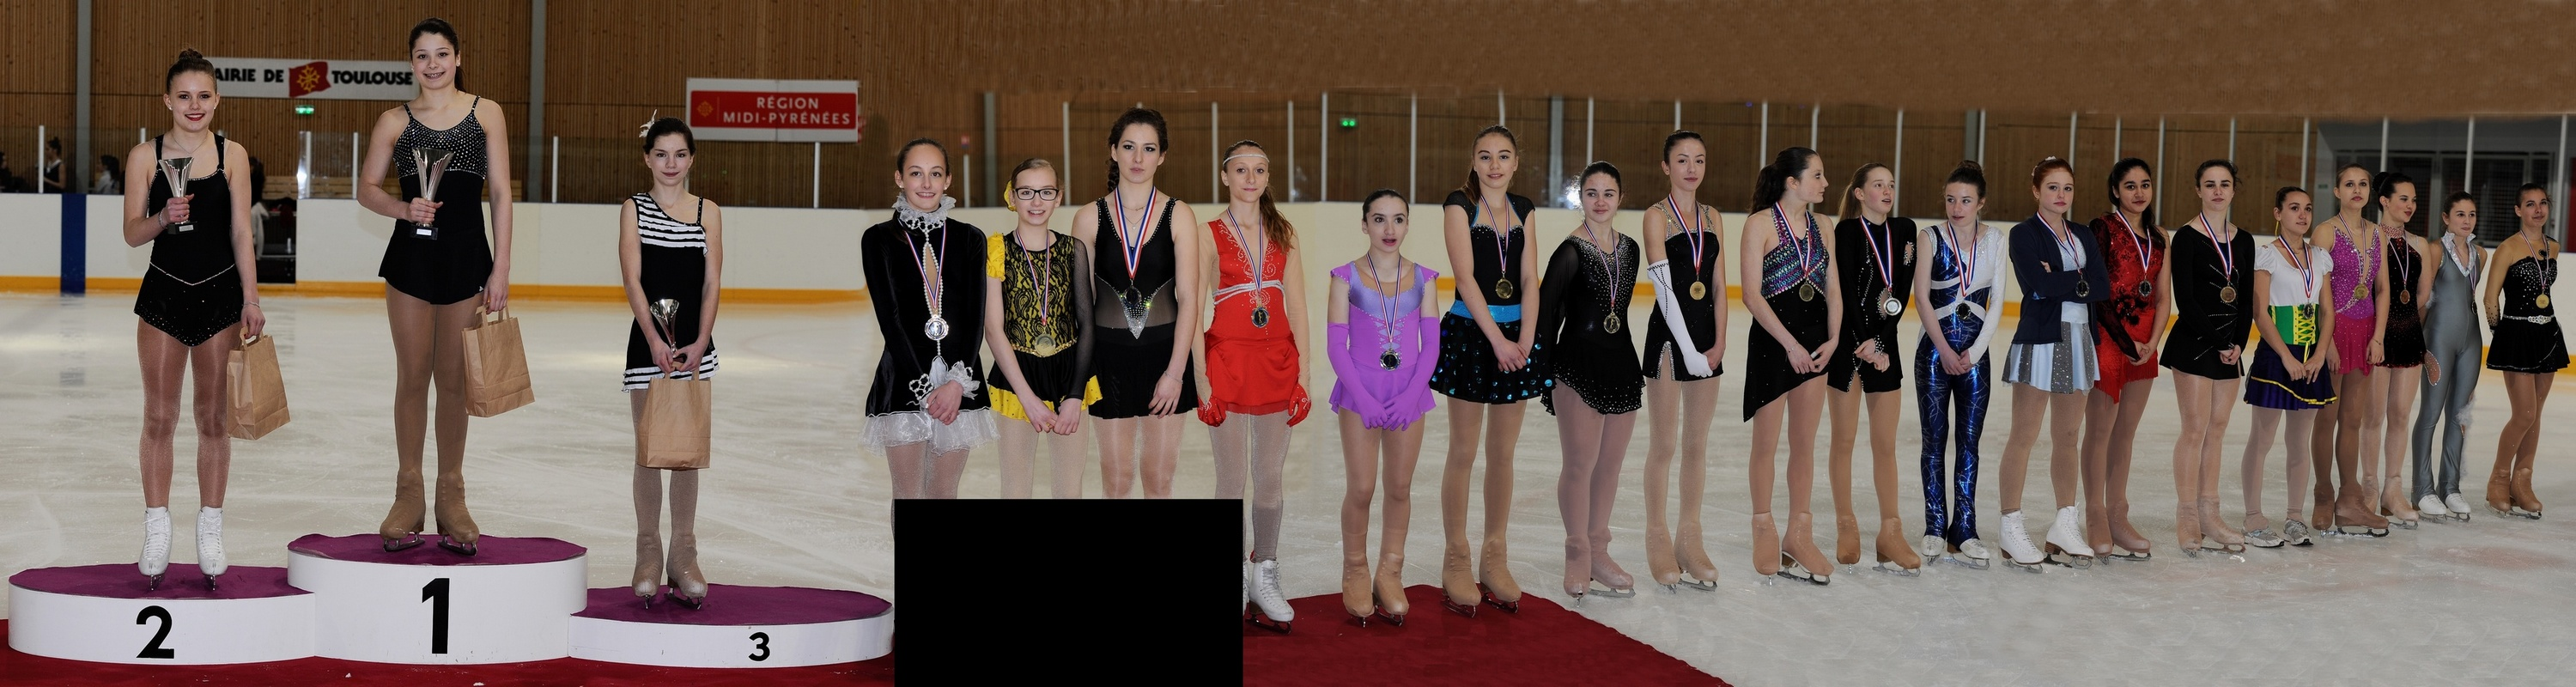 6-novice-dames-2333samedi_podium